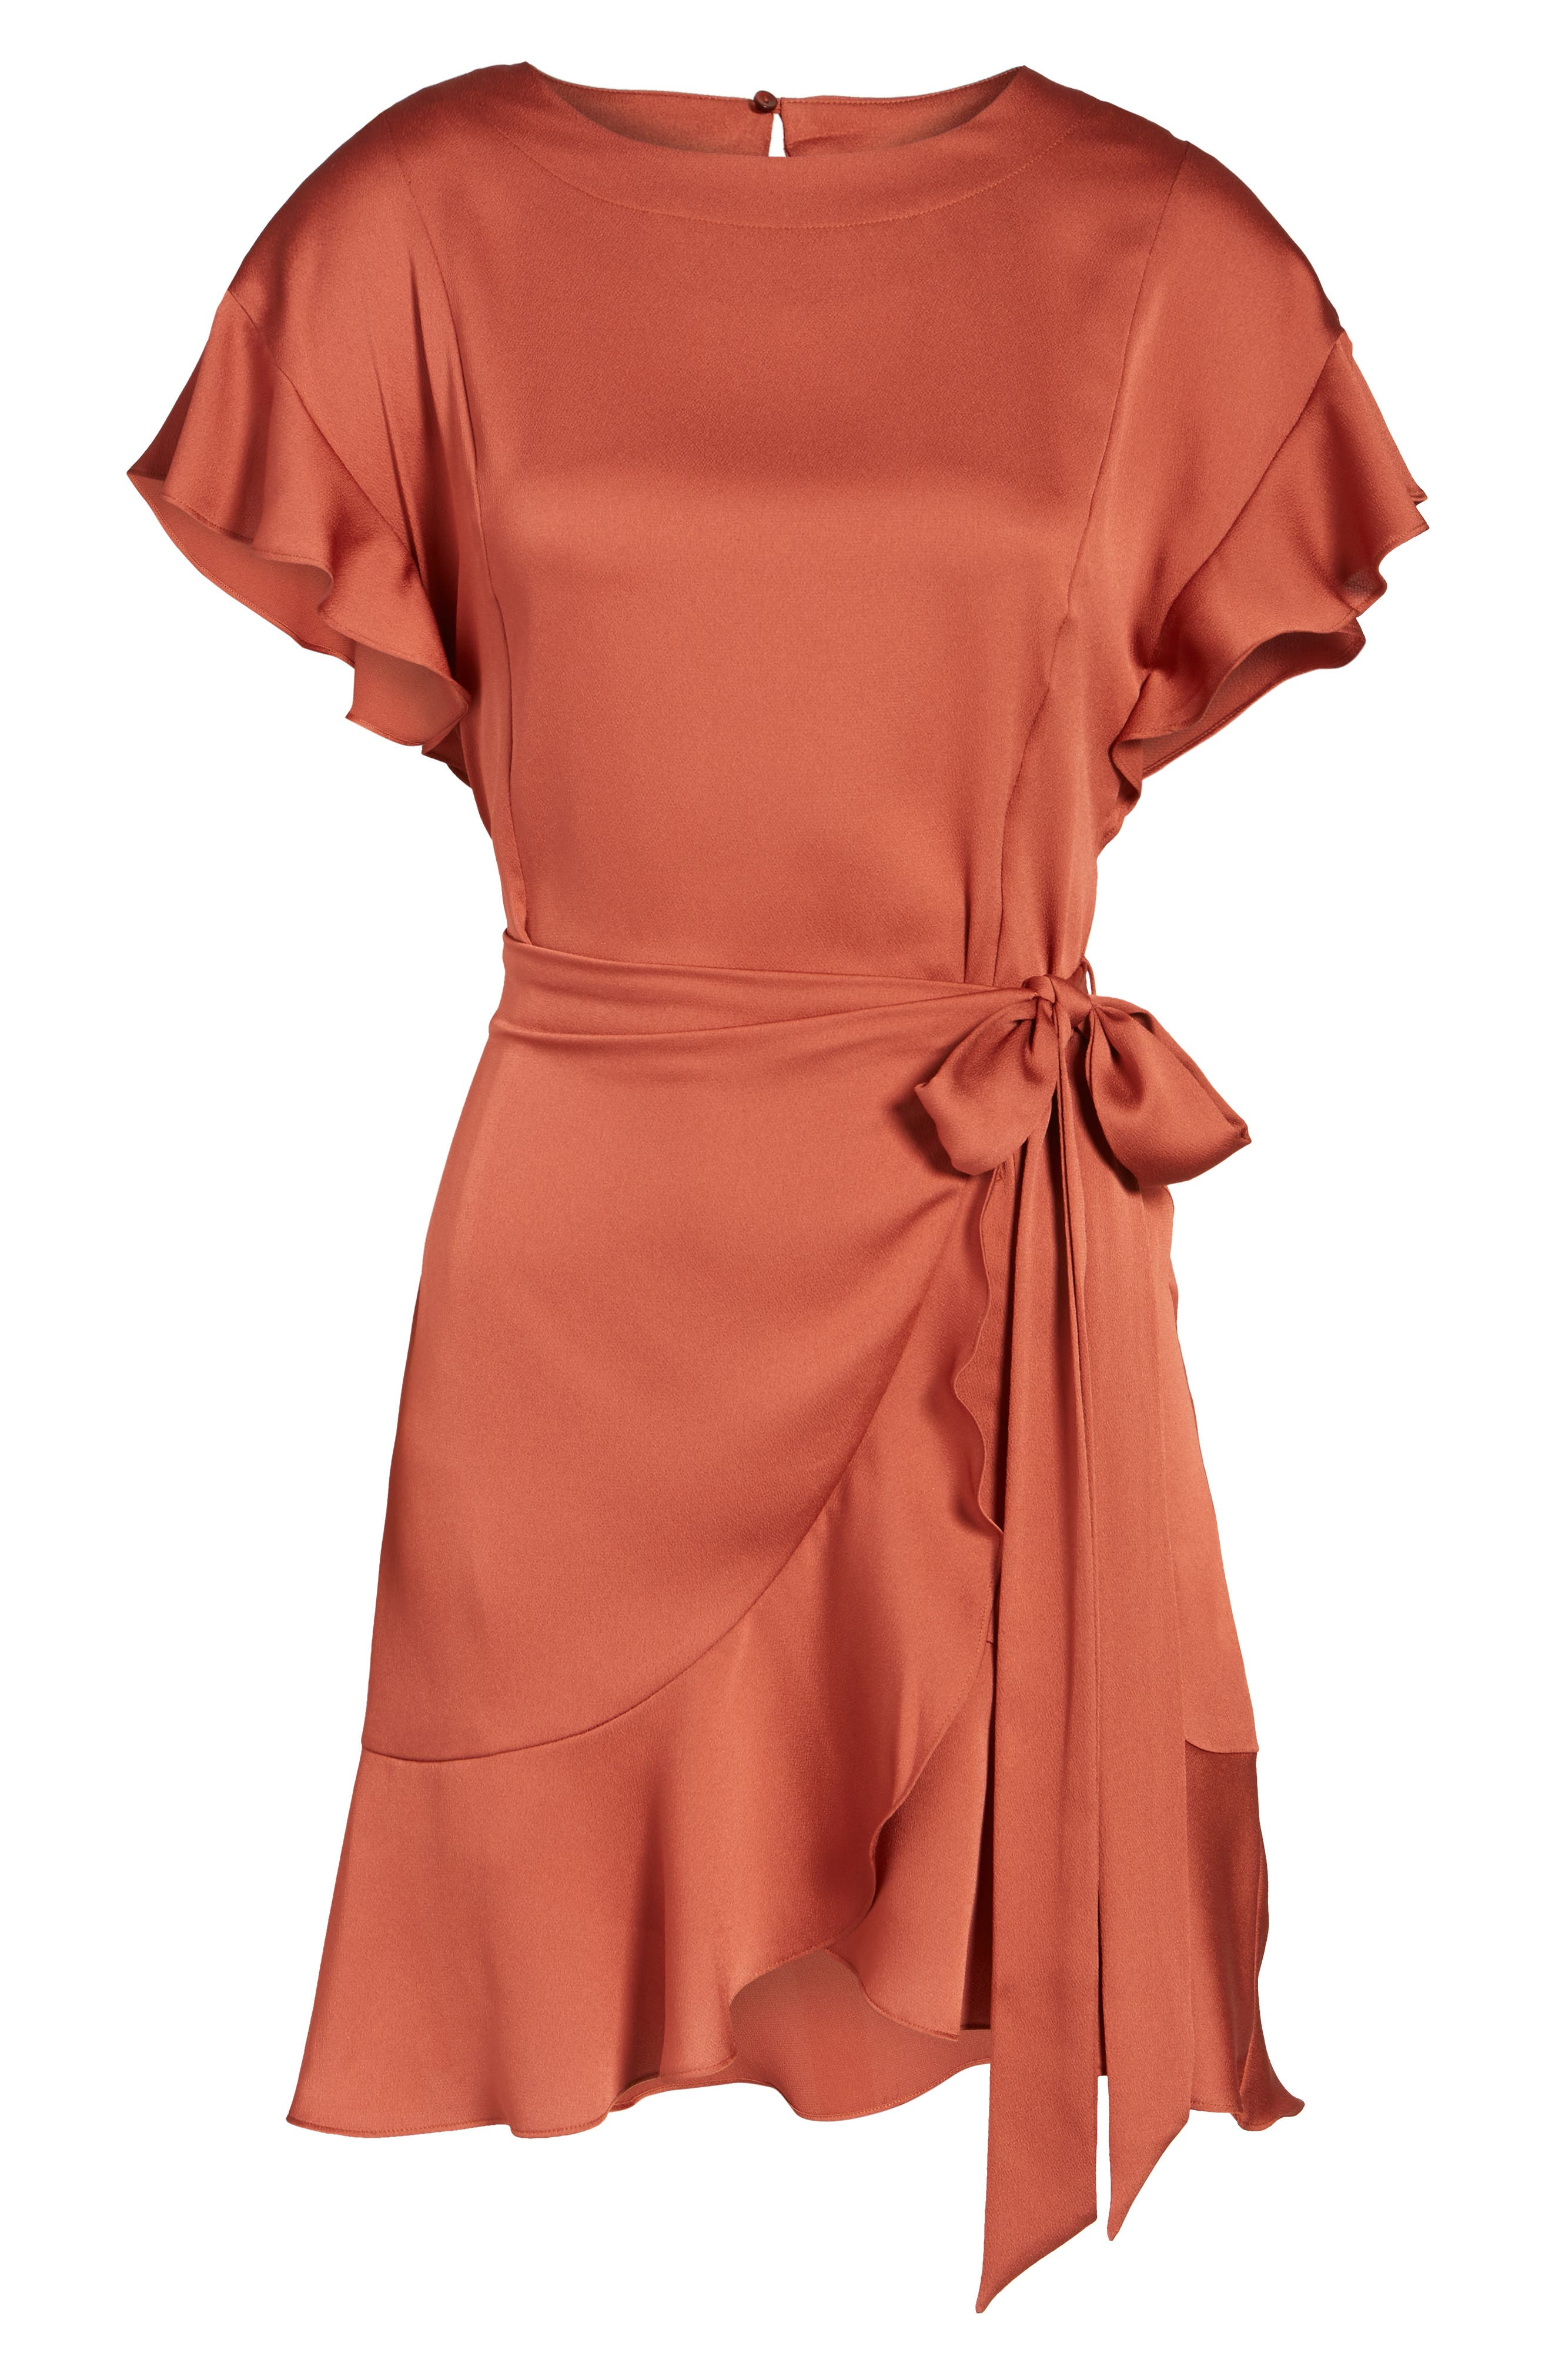 Ruffle Sleeve Satin Dress,                             Alternate thumbnail 6, color,                             200